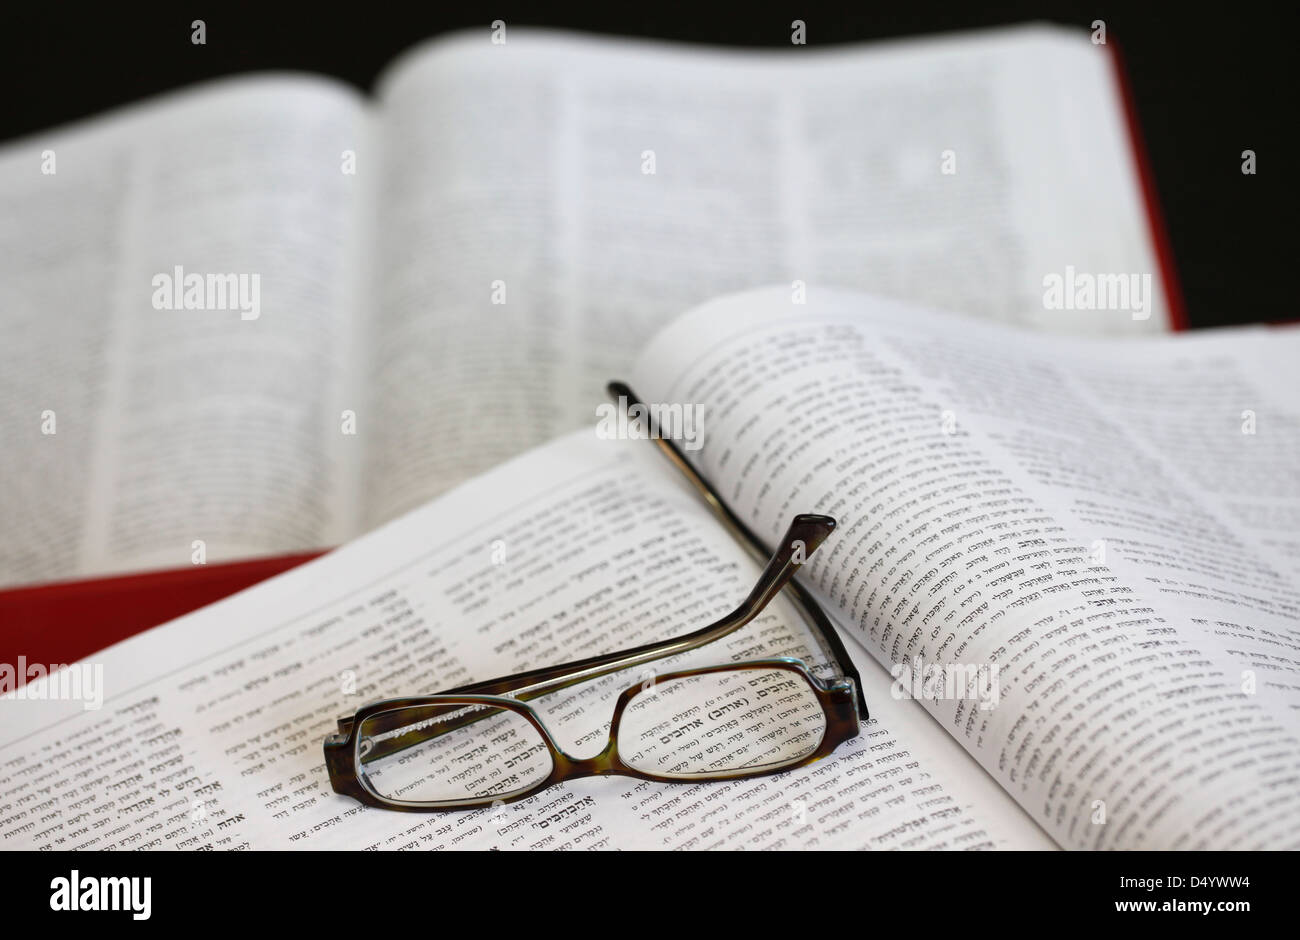 A Hebrew dictionary open at the word 'love', viewed through spectacles - Stock Image